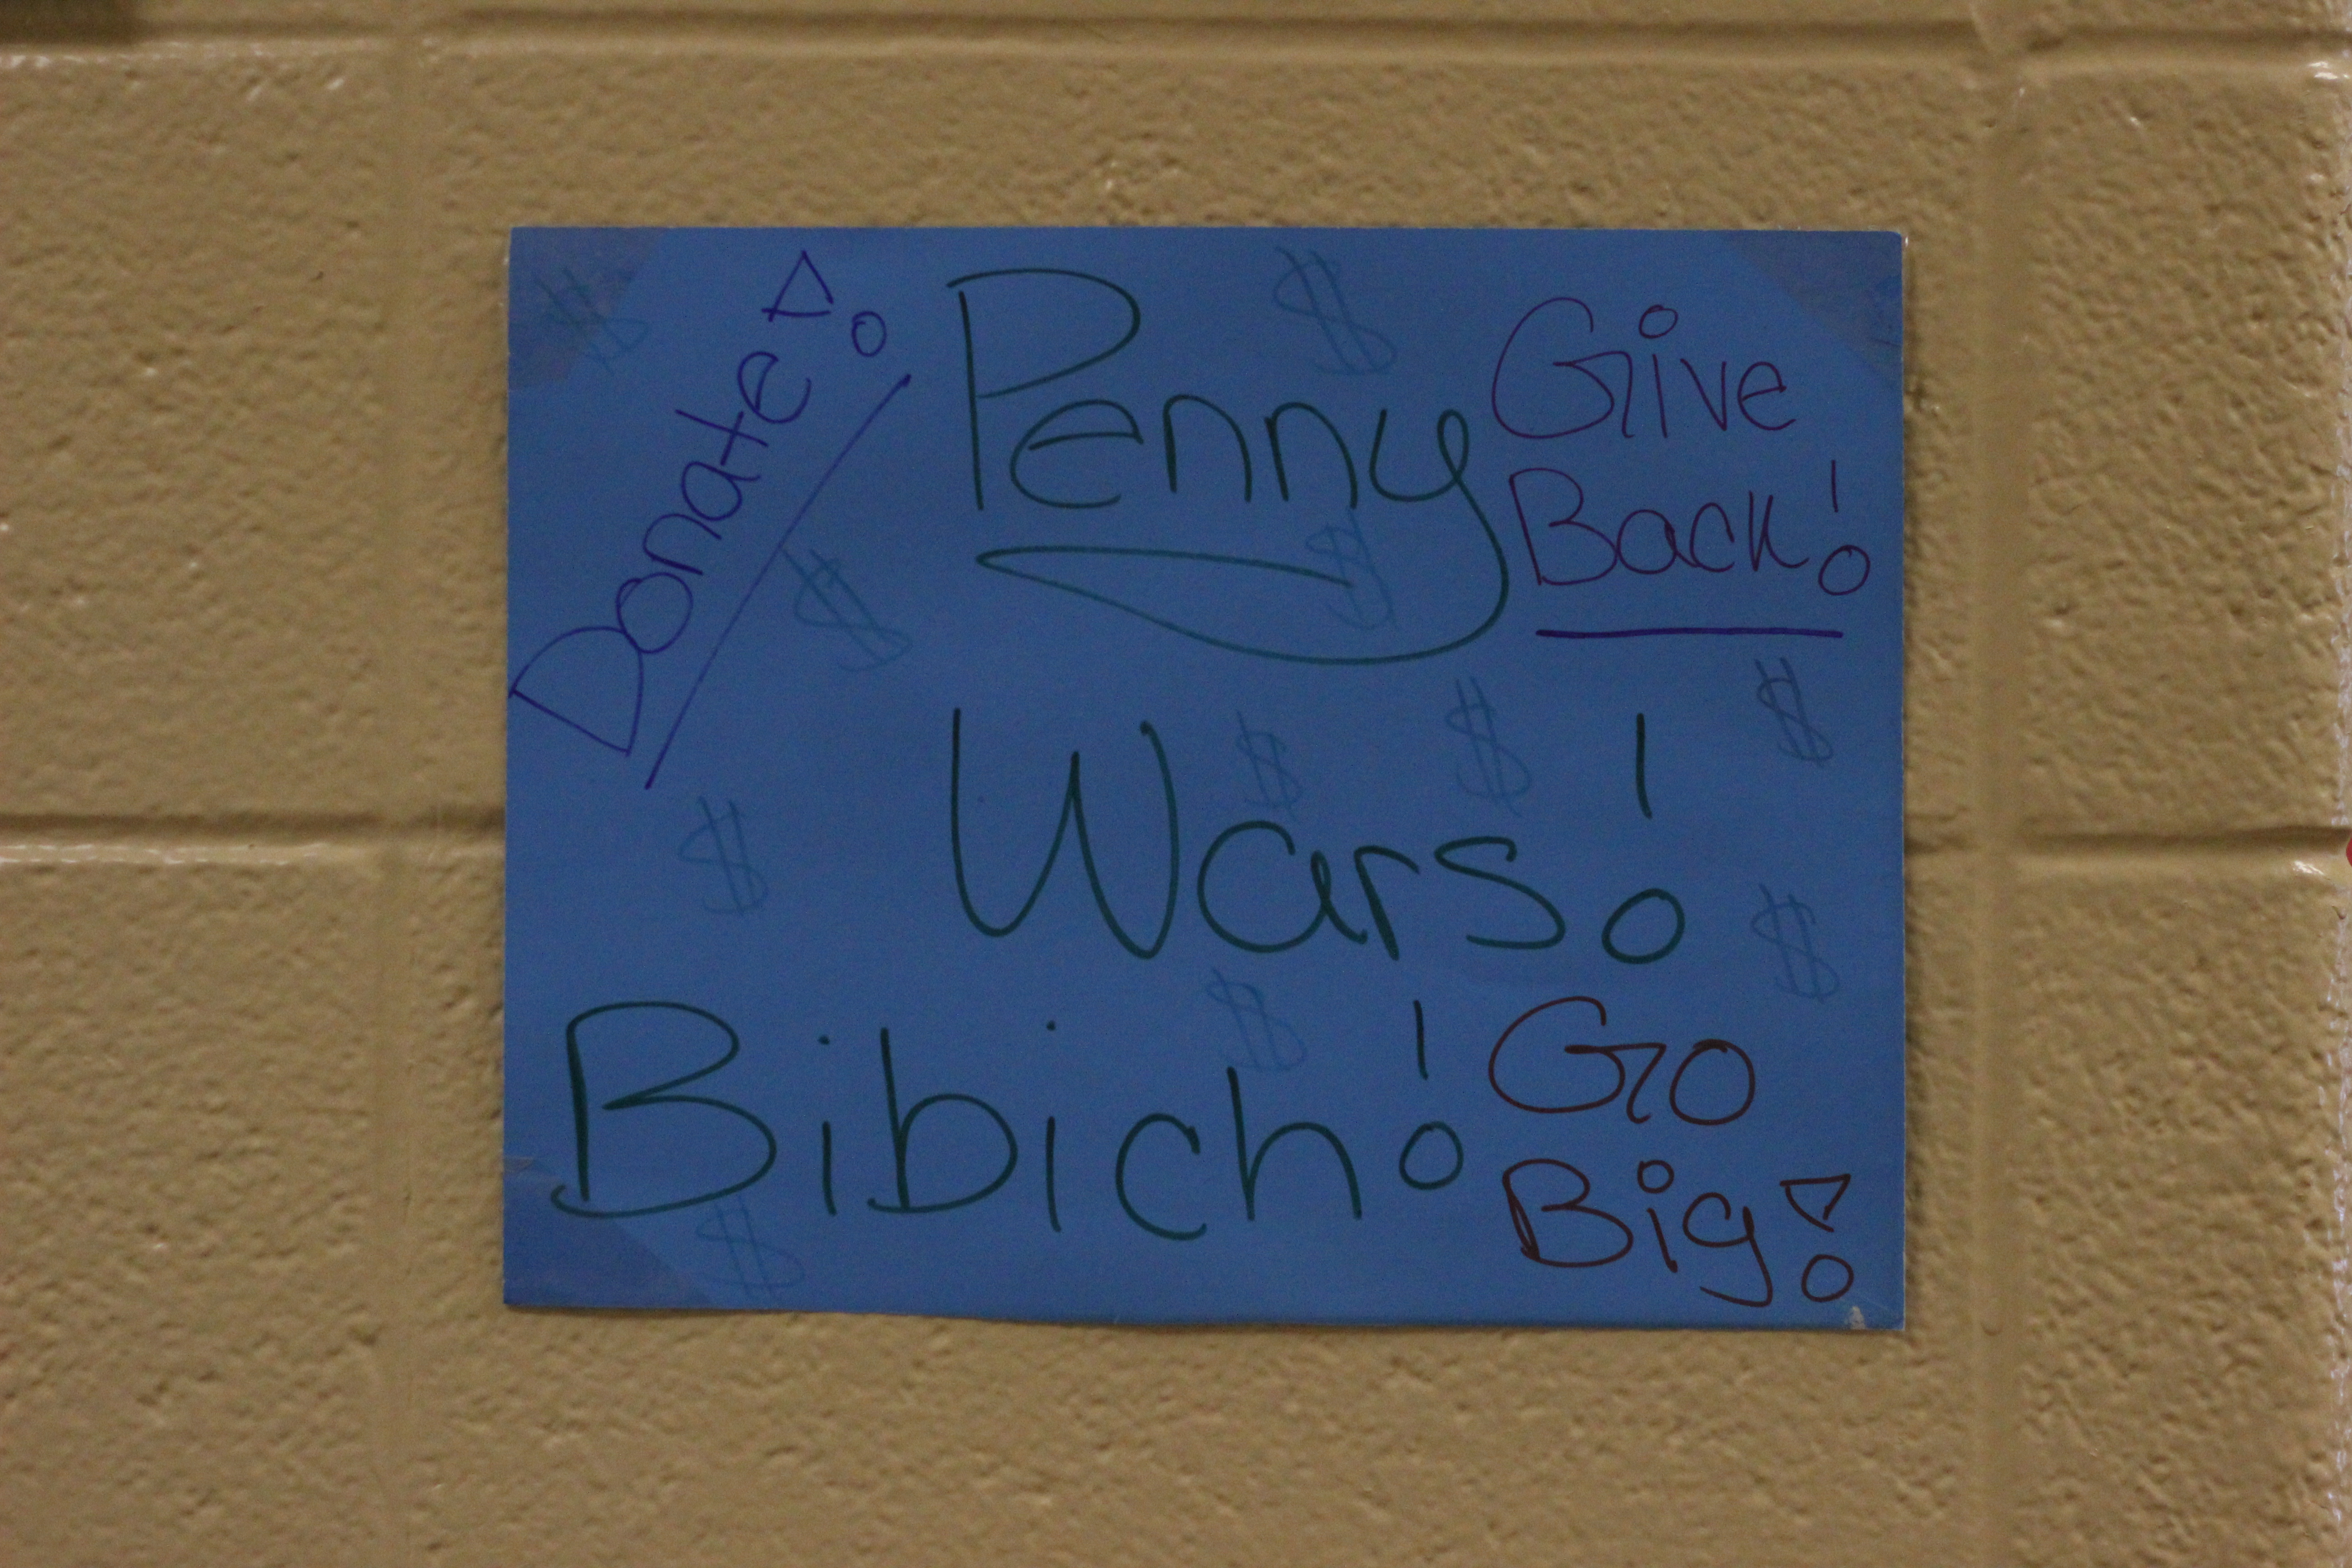 A student made poster for the penny wars hangs in the hallway